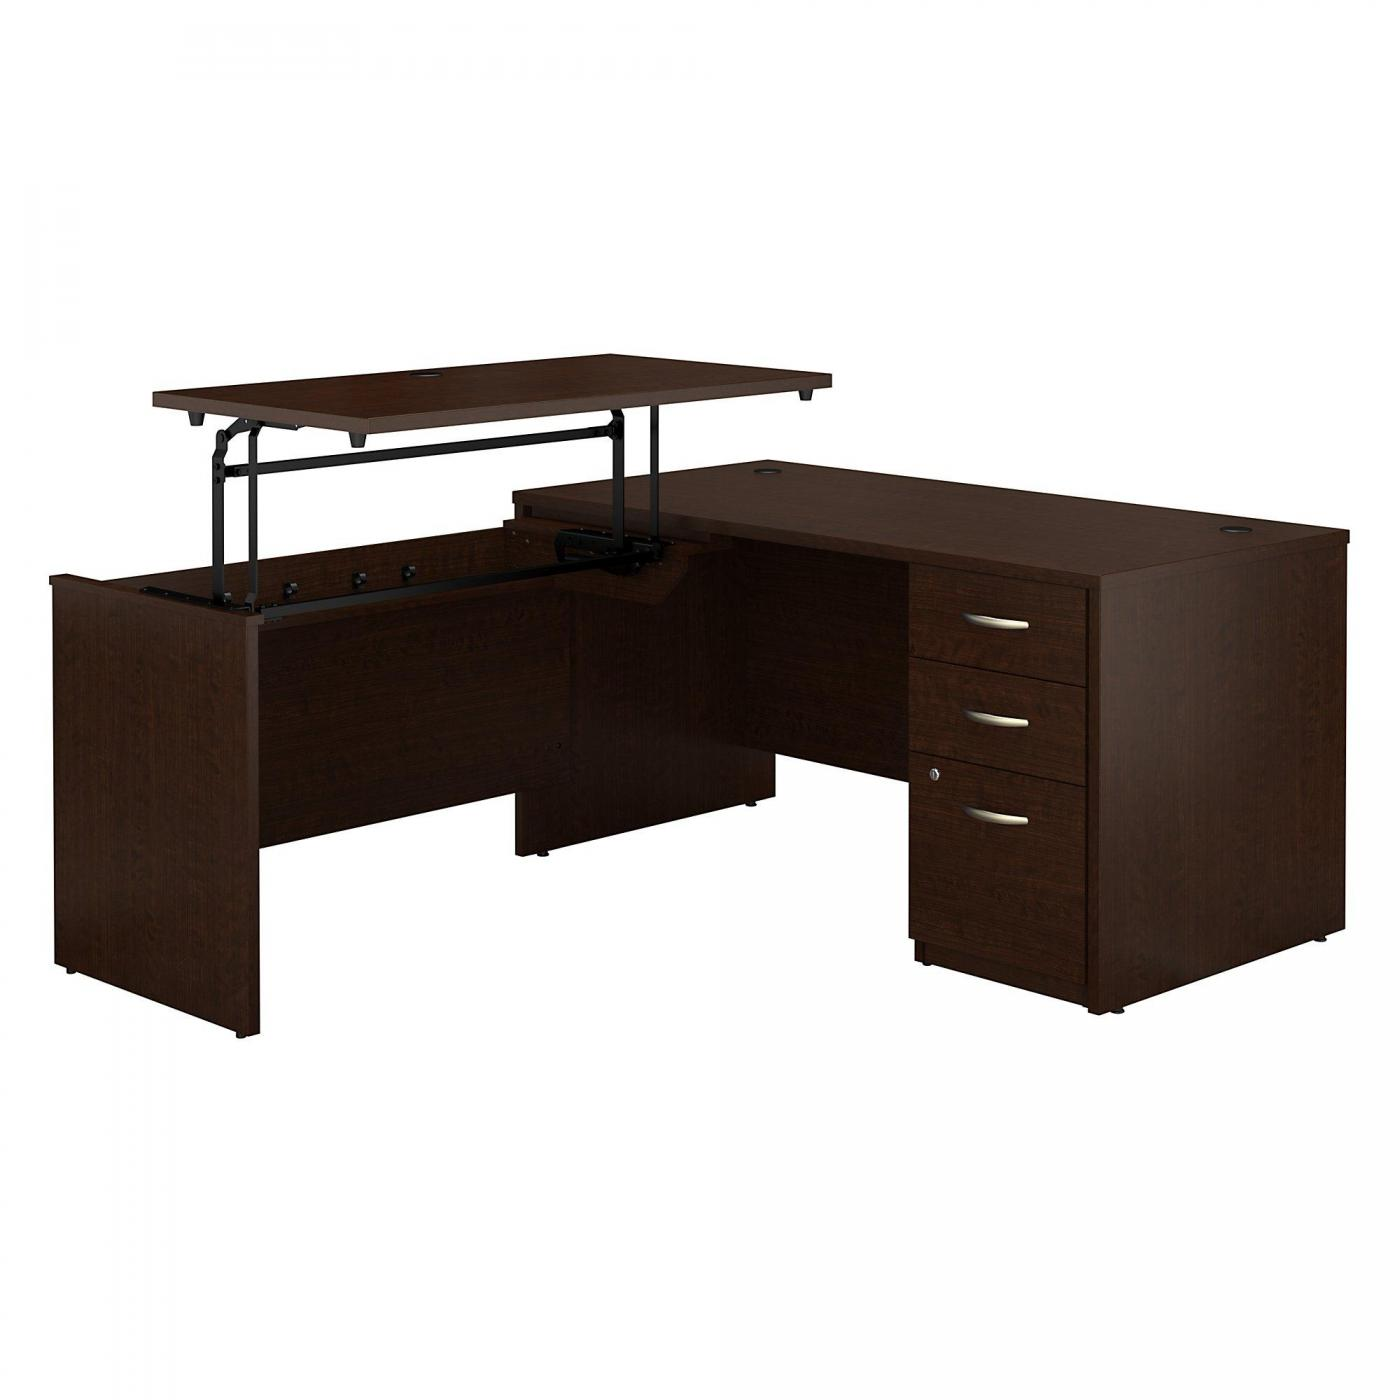 <font color=#c60><b>BUSH BUSINESS FURNITURE SERIES C ELITE 60W X 30D 3 POSITION SIT TO STAND L SHAPED DESK WITH 3 DRAWER FILE CABINET. FREE SHIPPING</font></b>